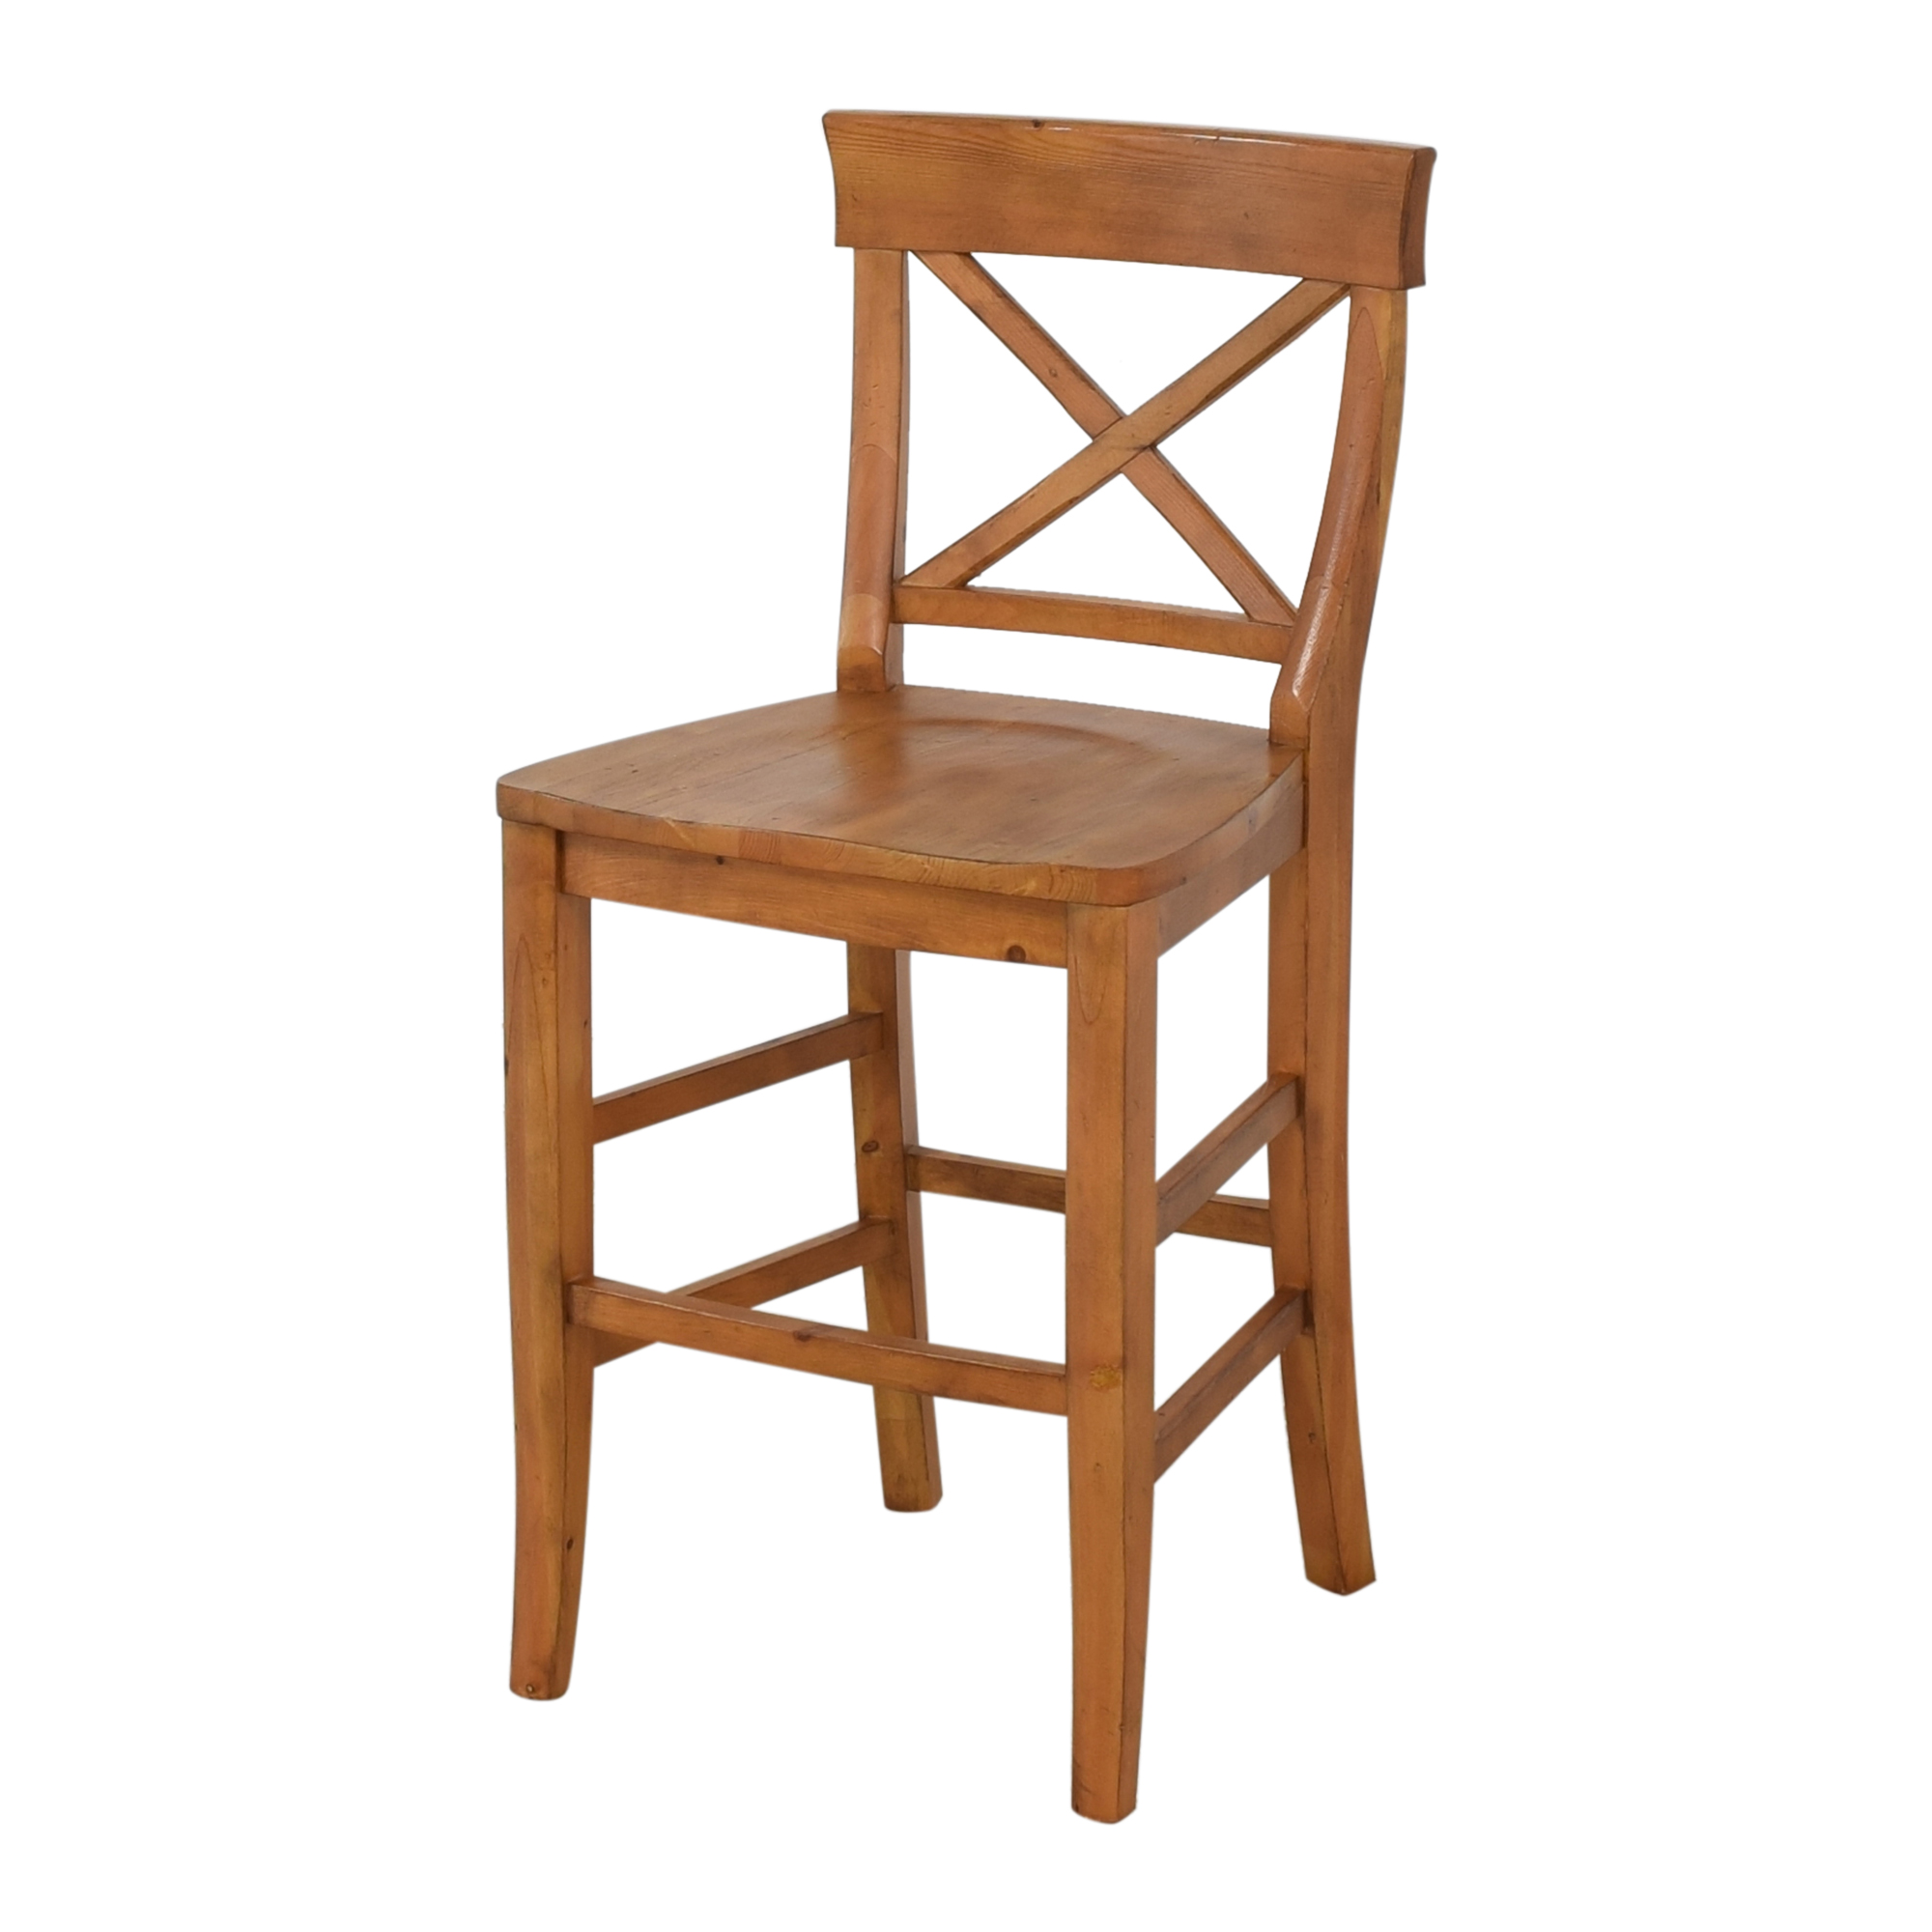 shop Pottery Barn Pottery Barn Aaron Counter Stools online